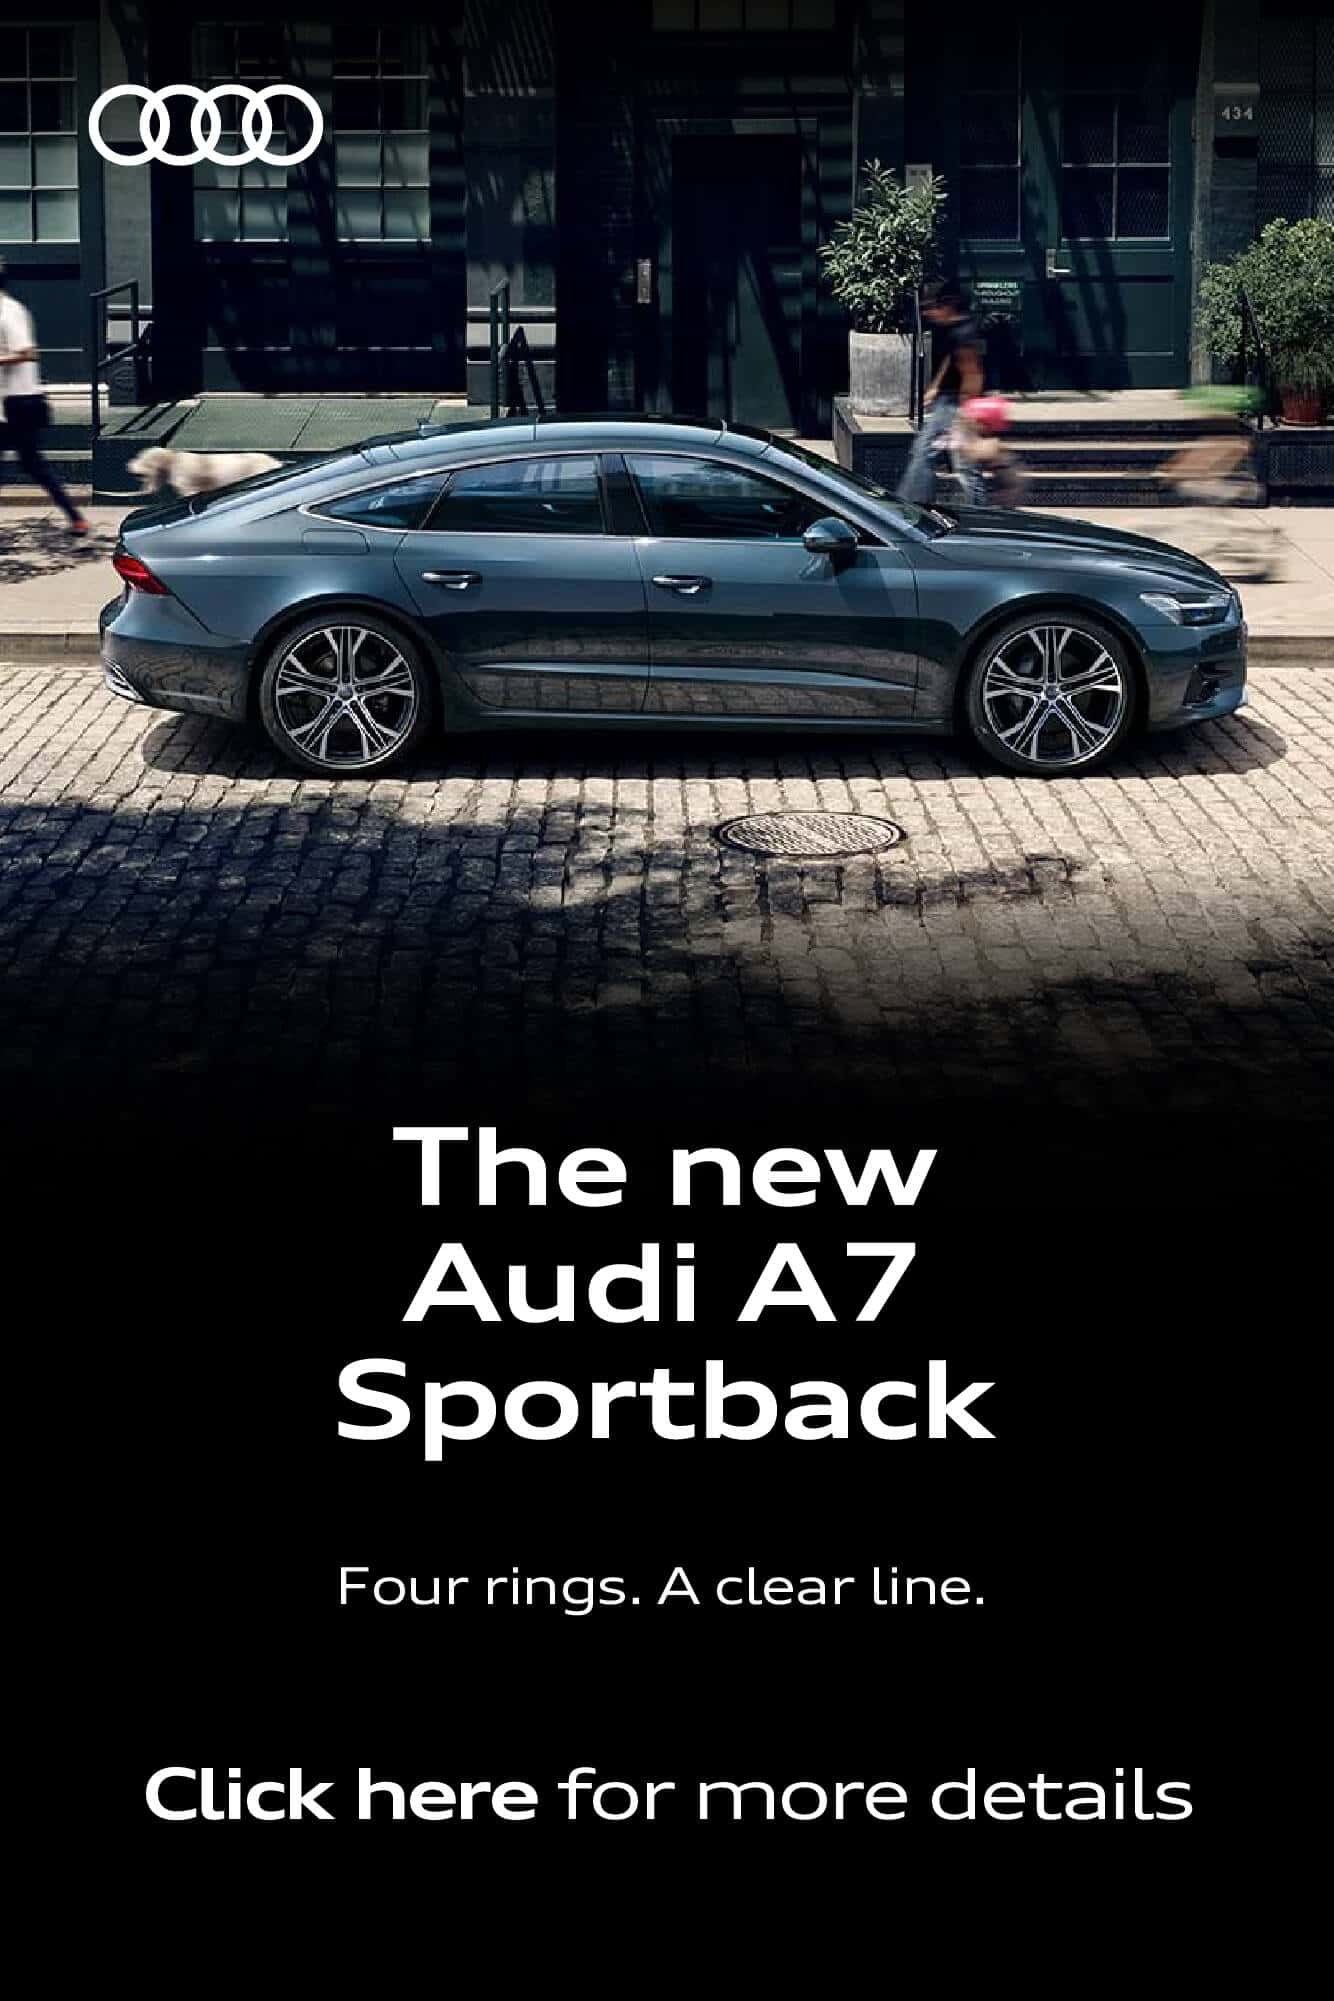 The new Audi A7 BB